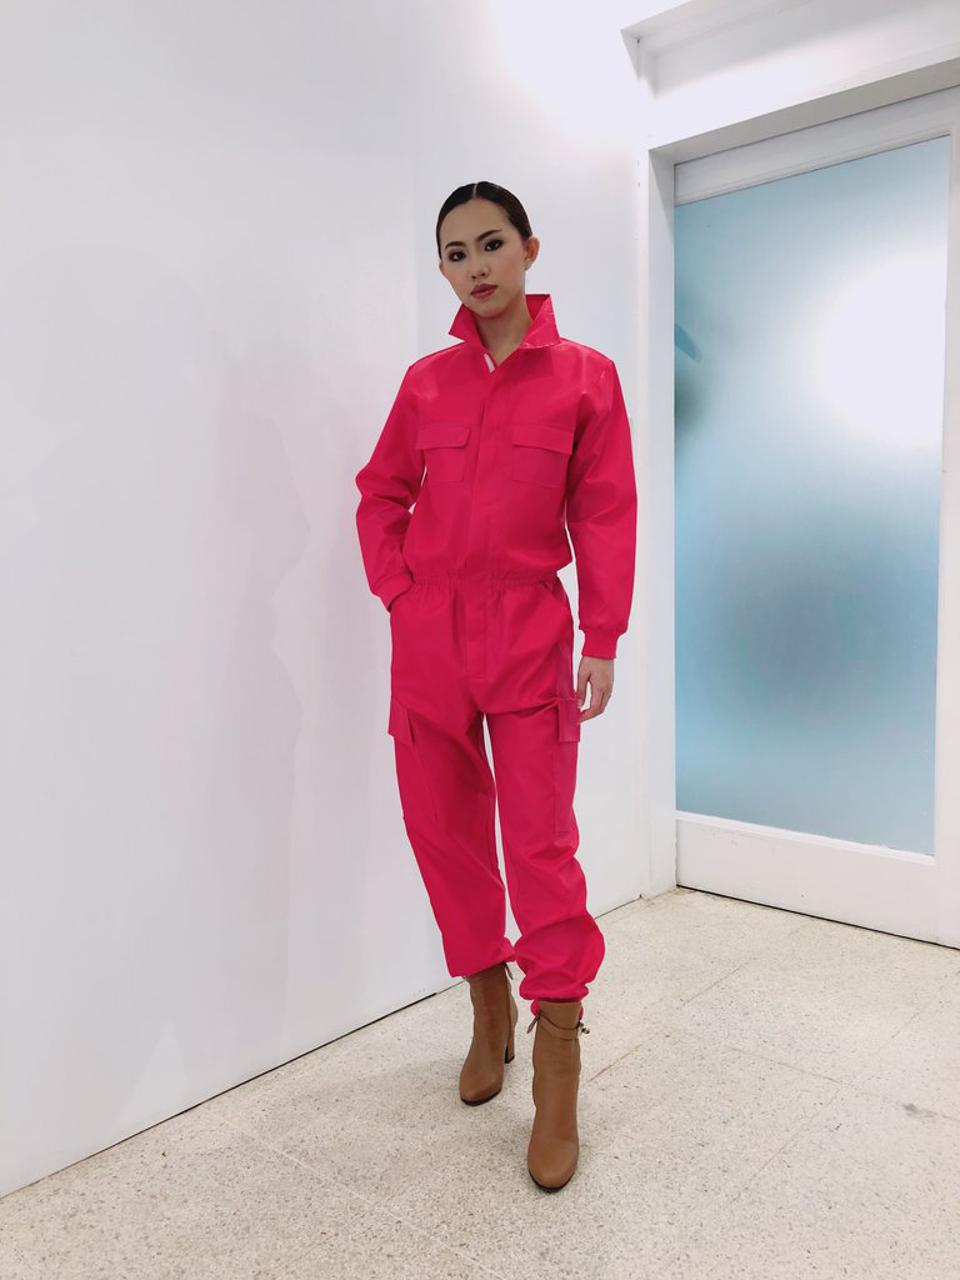 Philippine Designer Puey Quinones Pivots With A Digital Fashion Show And A Fashion For Protection Collection